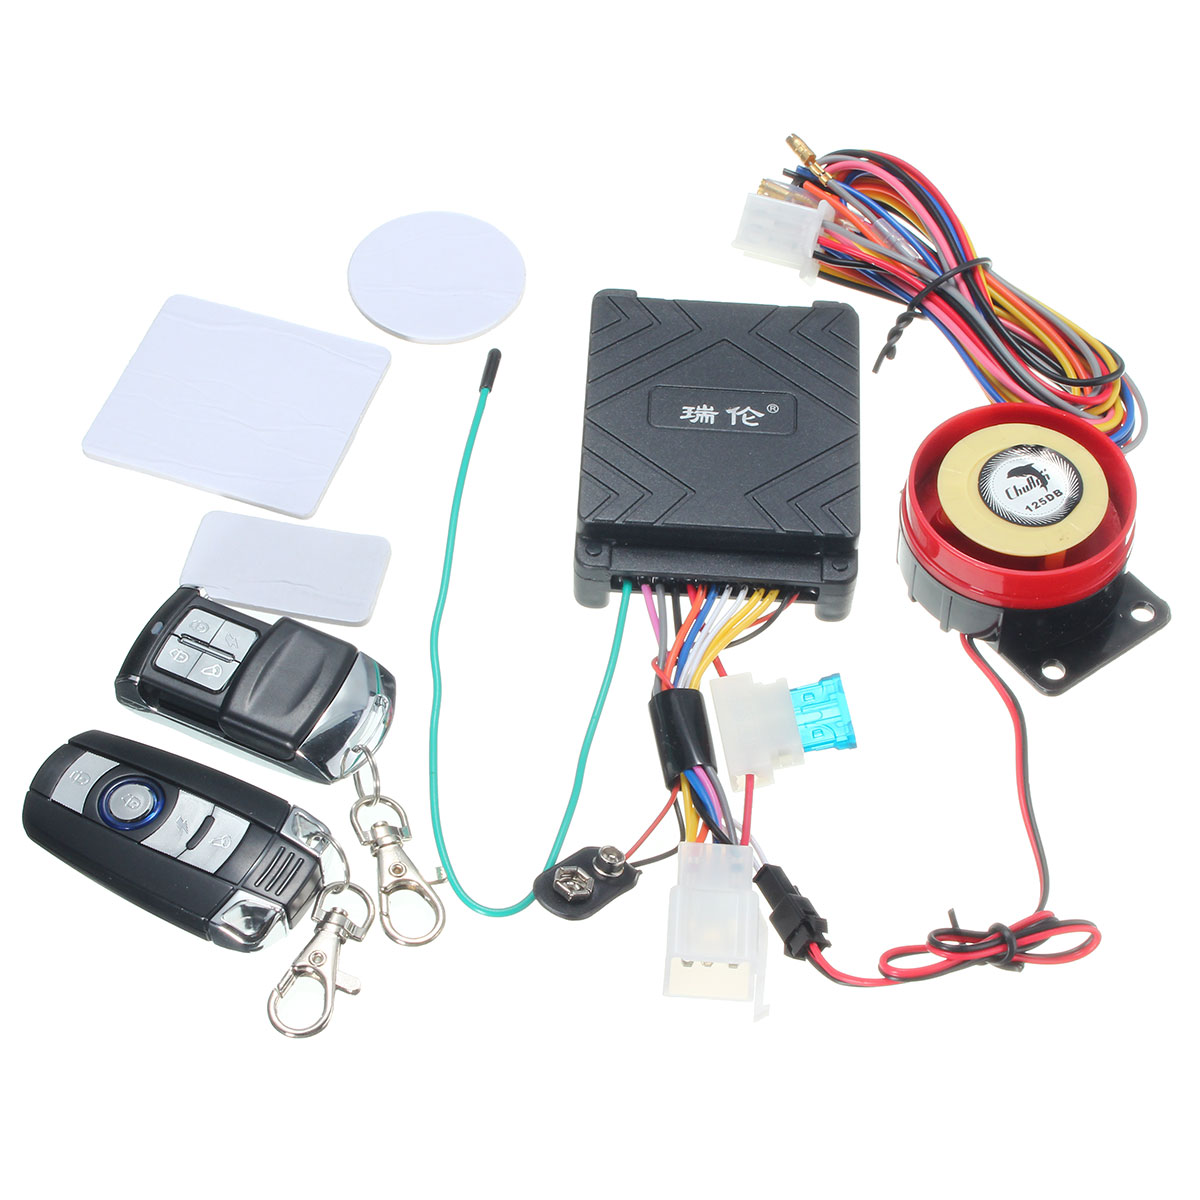 12v 125db Motorcycle Scooter Security Alarm System Anti Theft Remote View Mobile Dvr With Shock Sensor And Wifi Power Adapter 1 X High Siren Brain Module Built In 2 Controls Connection Cables 3 Stickers